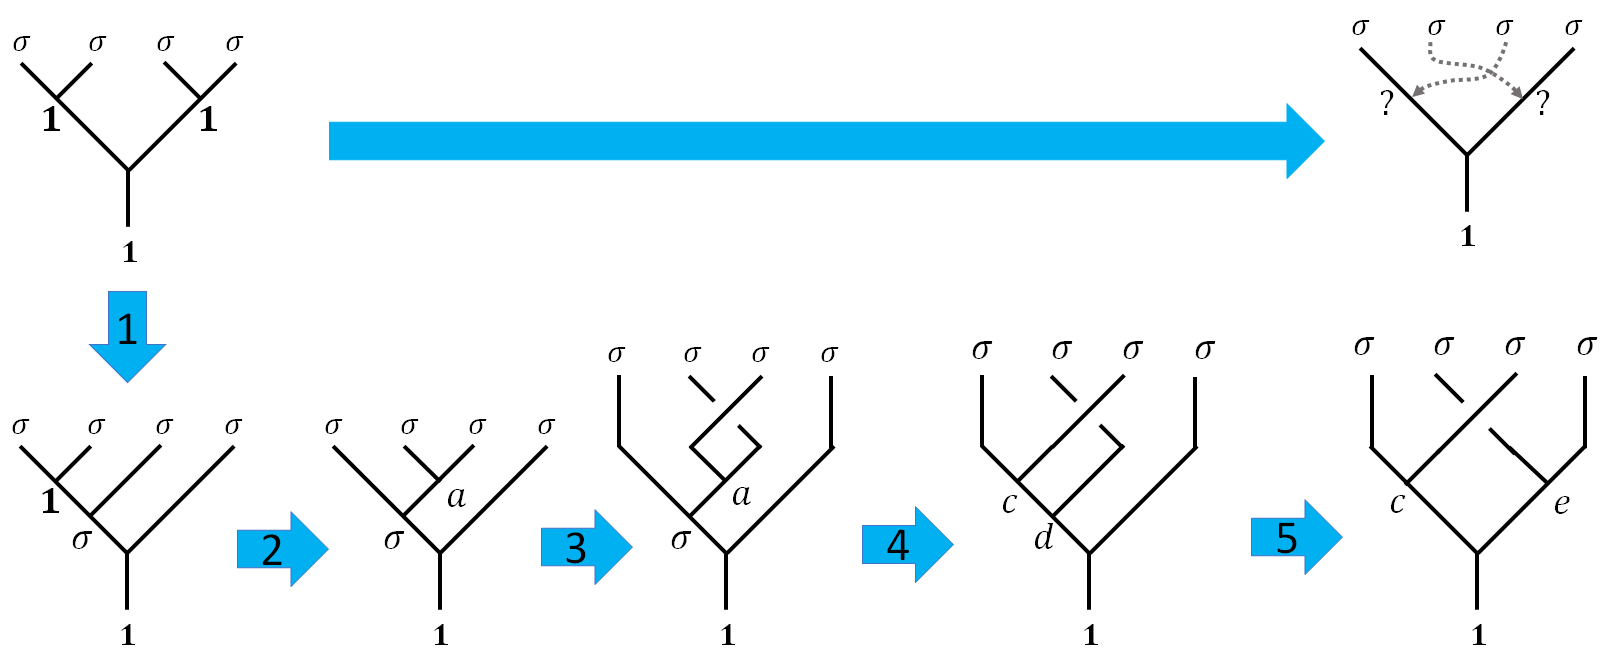 quantum gates by braiding, step by step